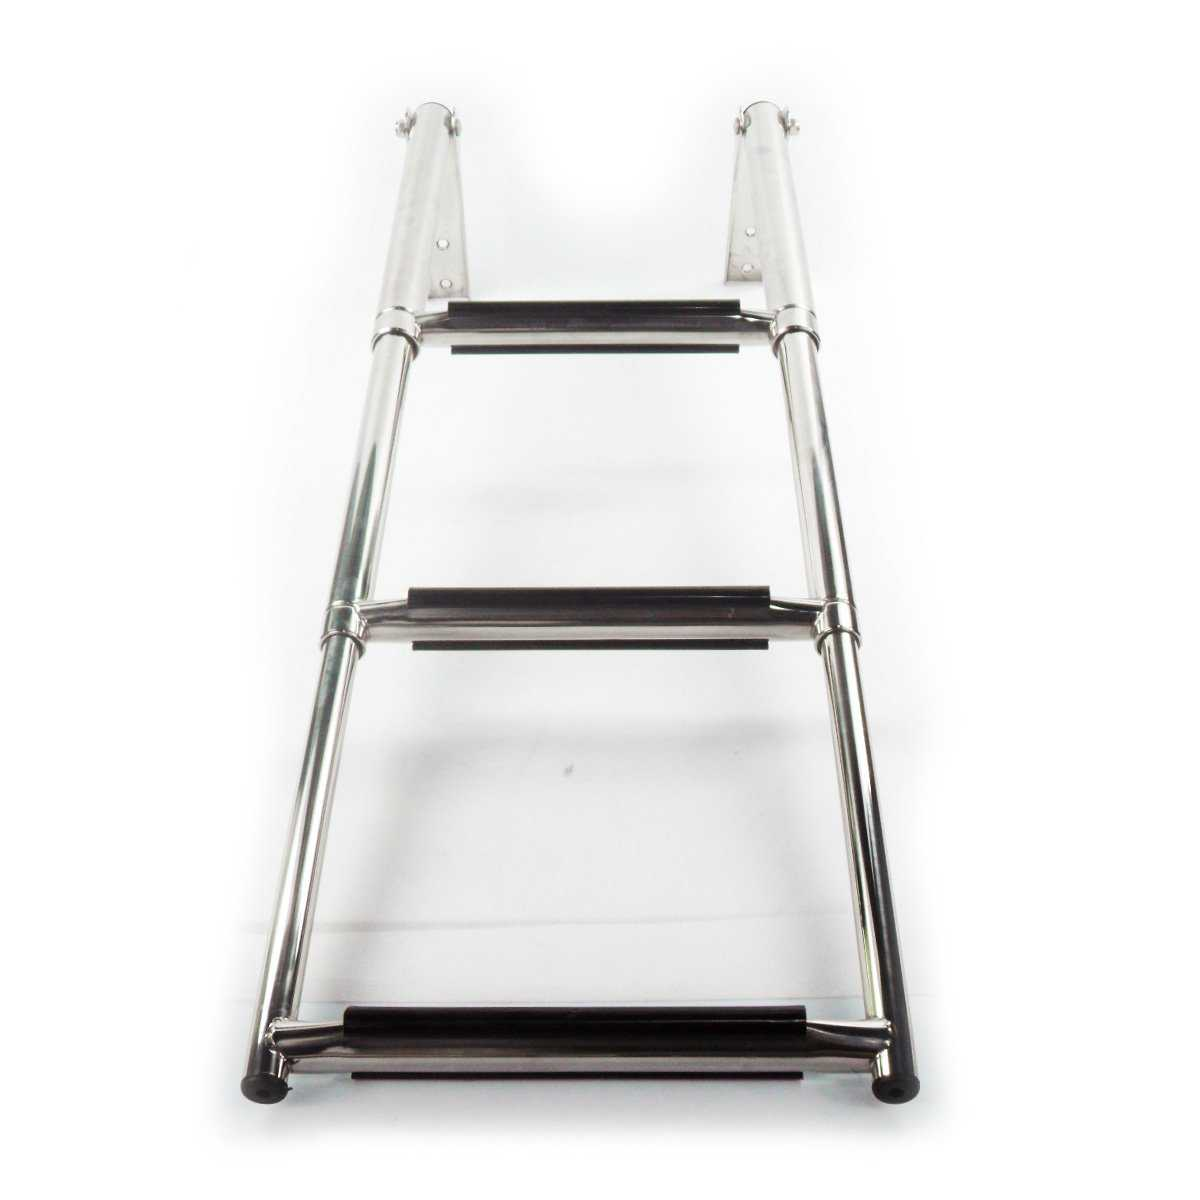 New 3-Steps Stainless Steel Boat Boarding Ladder Marine Boat Parts & Accessory, Model: 19616 By taifang LTD